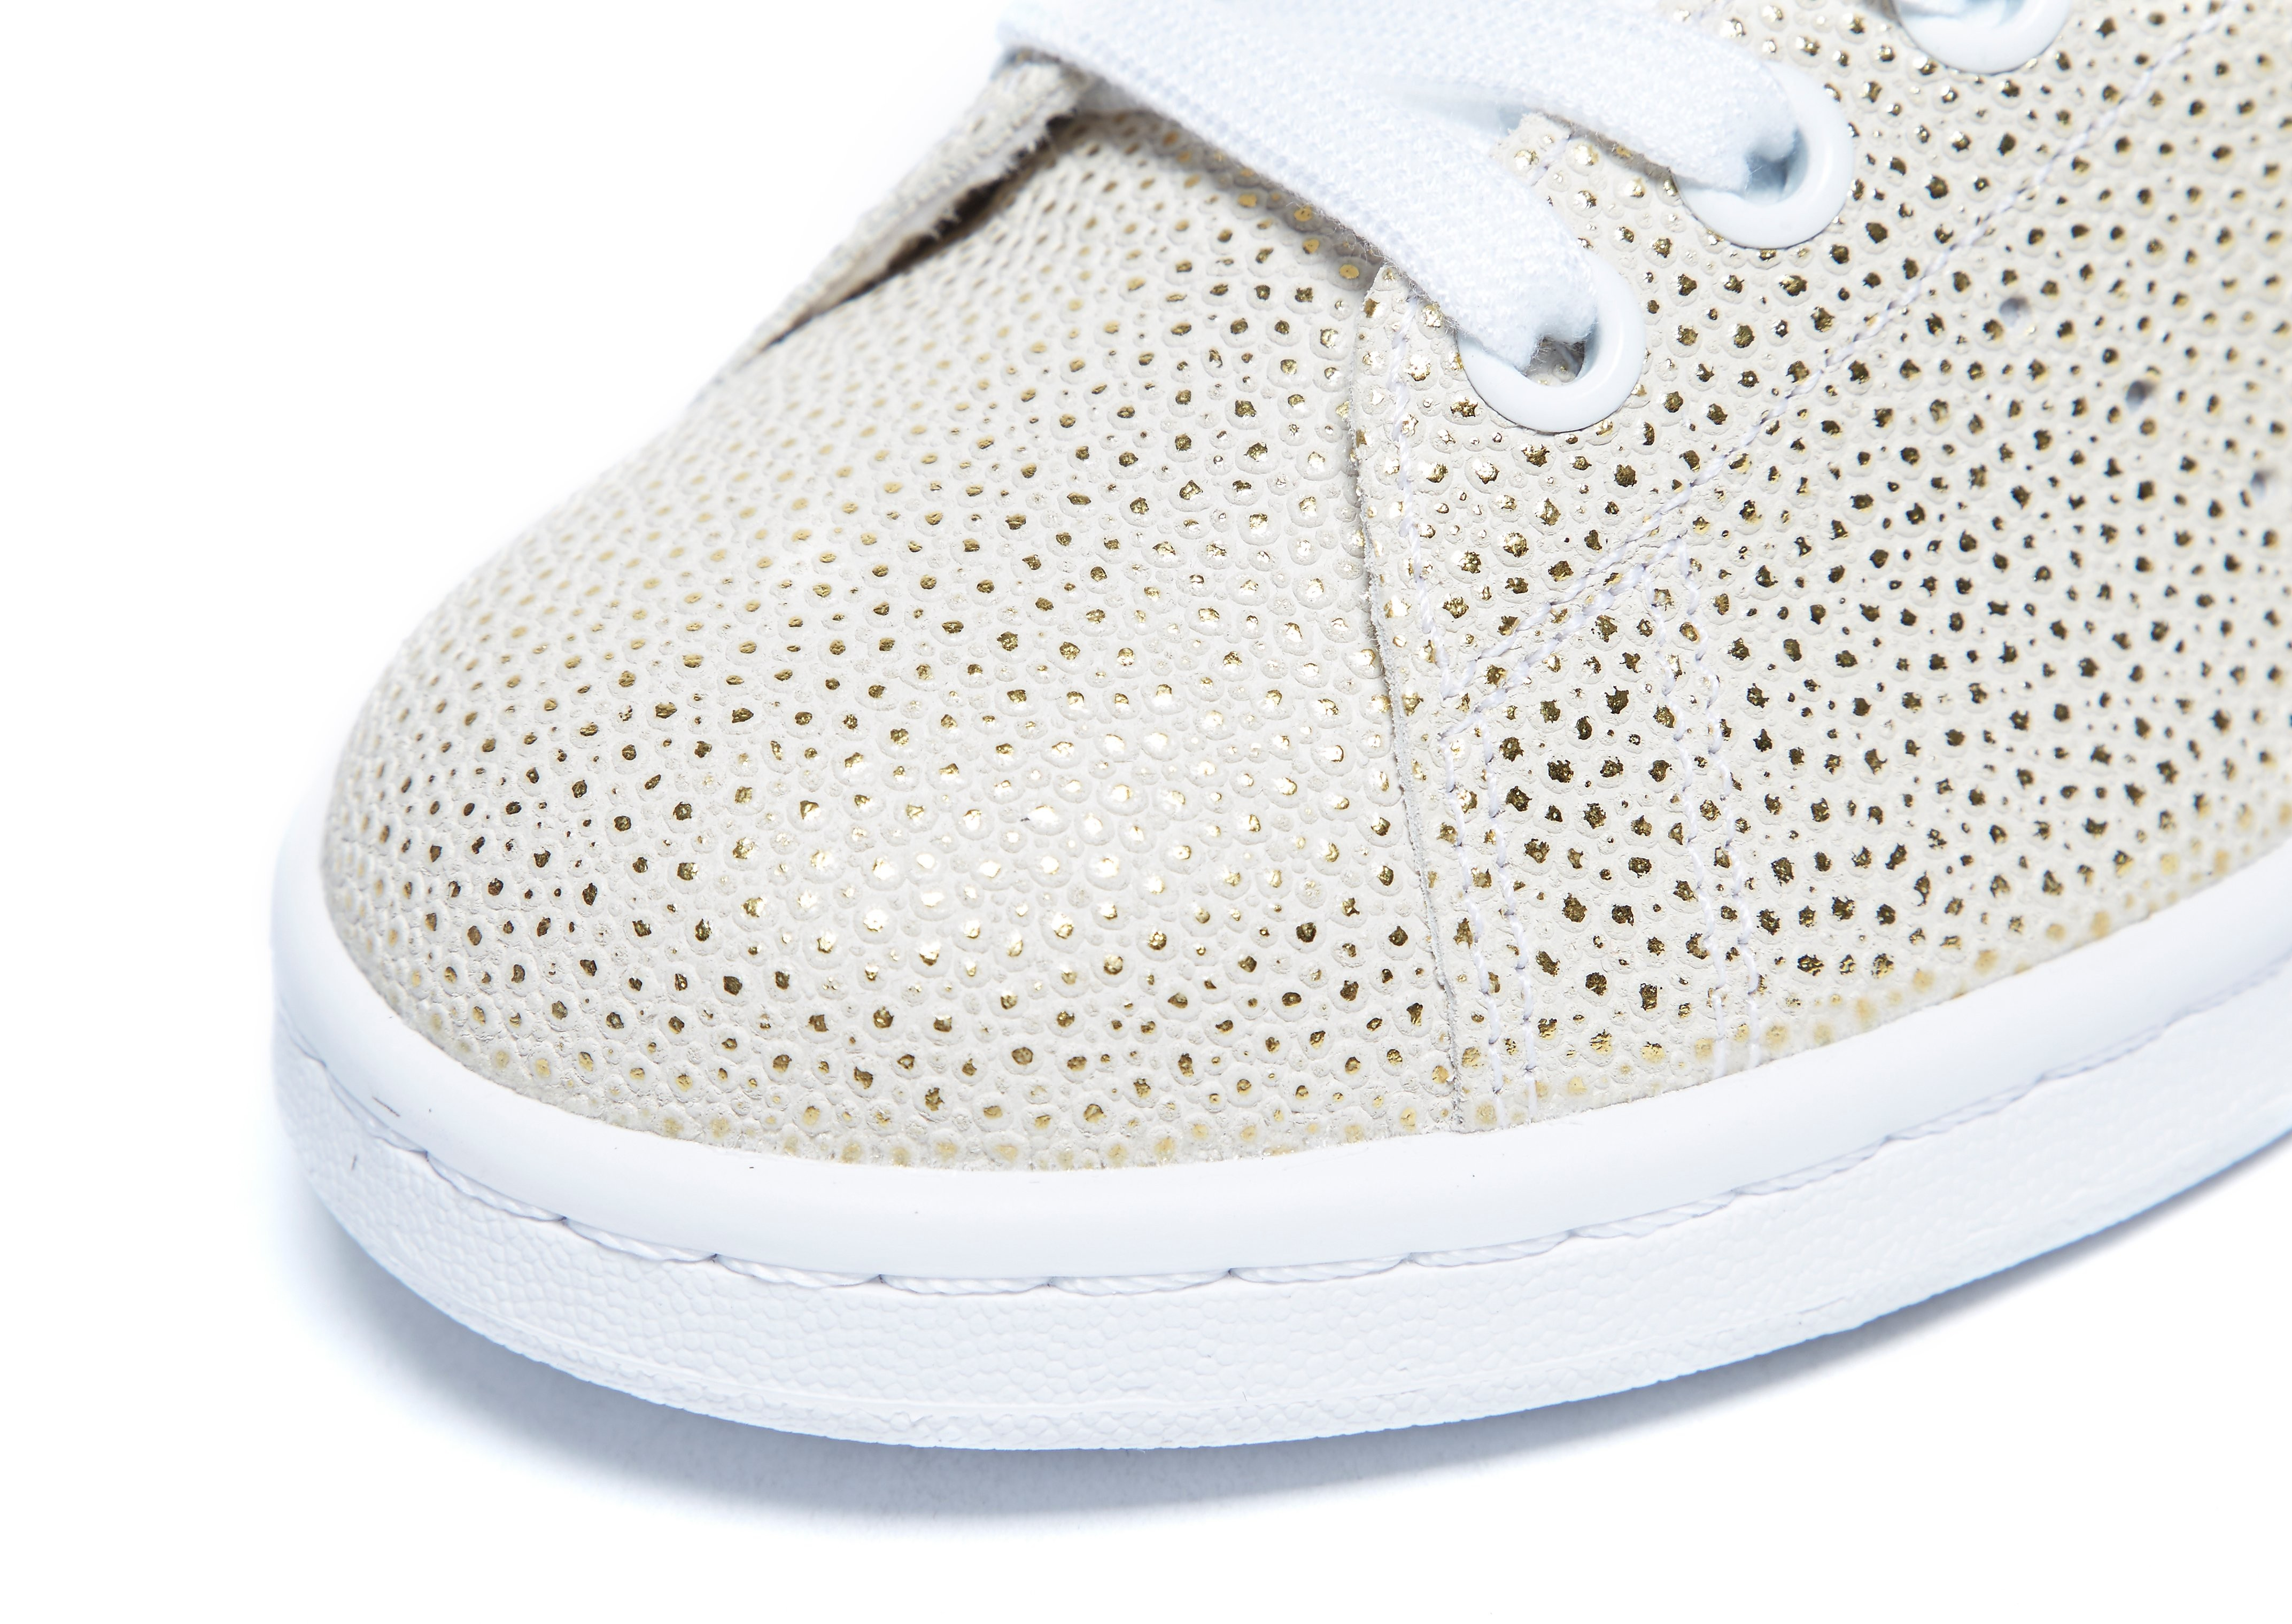 Le adidas stan smith adidas originali calzature jd sports